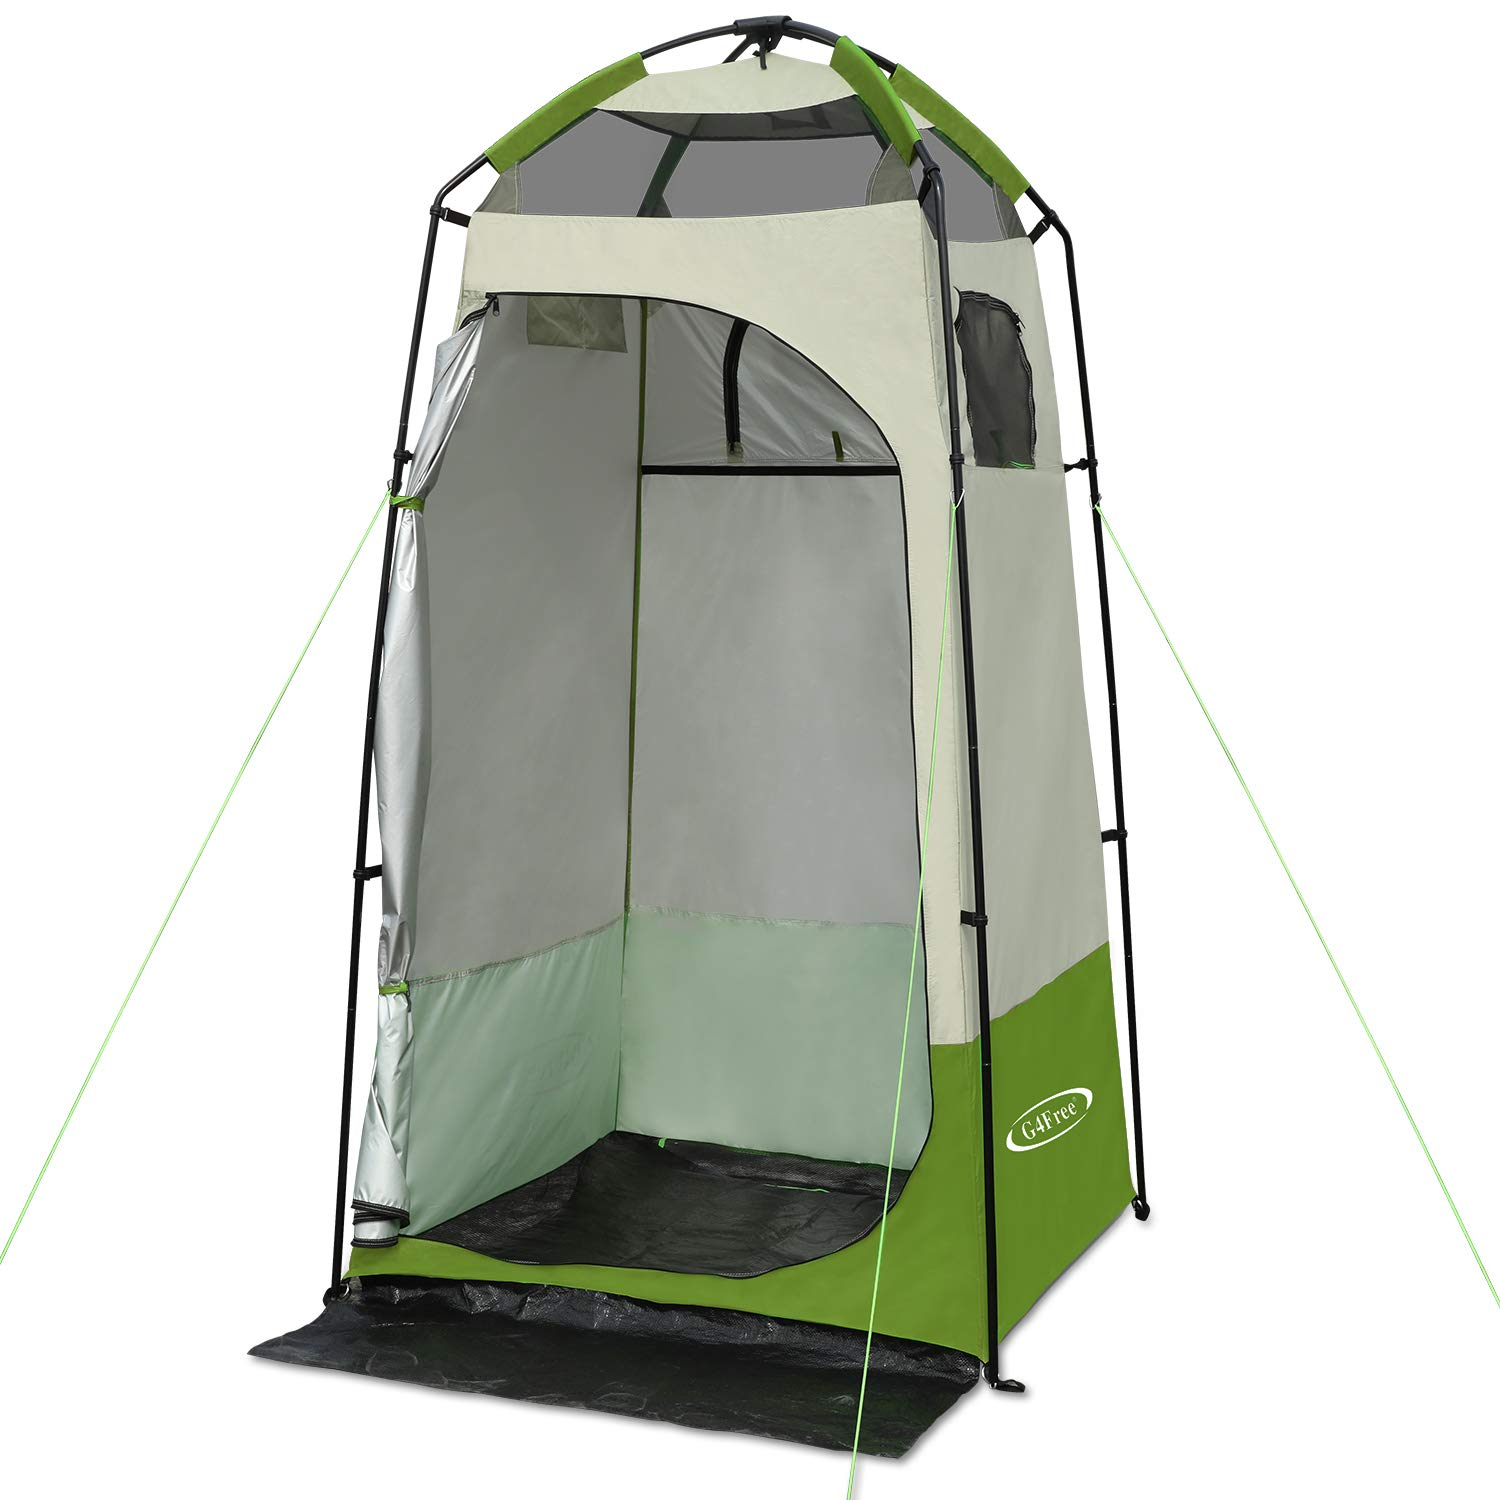 G4Free Portable Easy Up Privacy Shelter for Changing,Dressing,Shower Room Outdoor Camping Tent(Green)